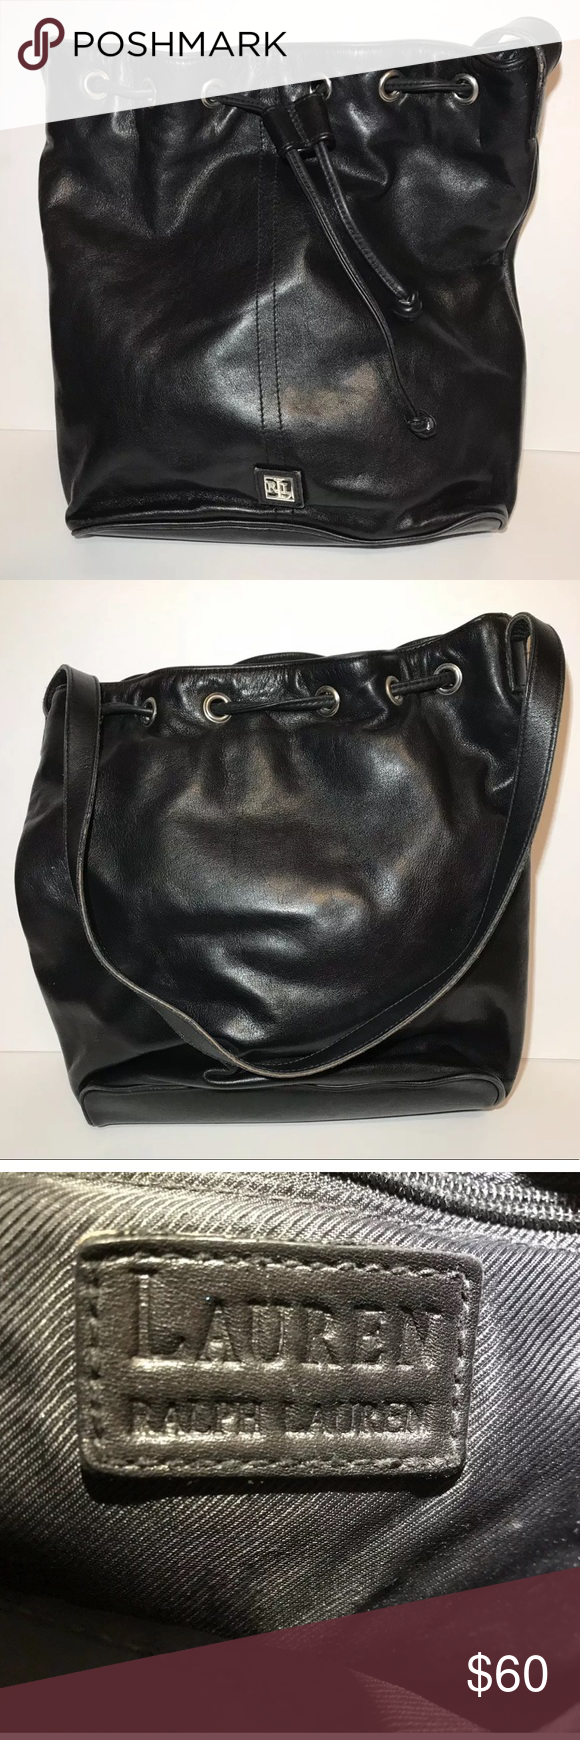 "2b4770f4d53 Lauren Ralph Lauren Purse. Black Leather. Lauren Ralph Lauren Purse. Black  Leather. 11.5"" tall. 10.25"" wide. Very good pre-owned condition."